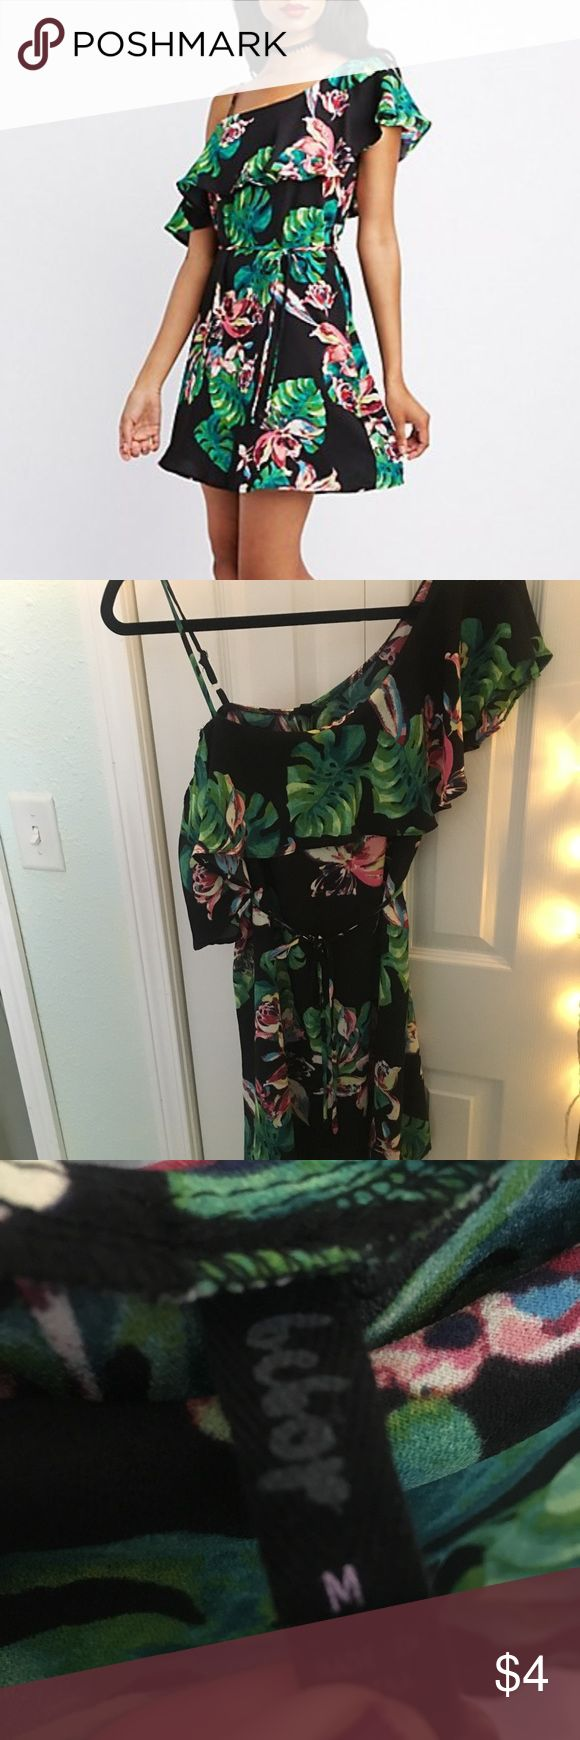 Charlotte Russe One Shoulder Dress (damaged) New, just bought in July and damaged. Tropical print dress with ruffle that hangs off one Shoulder. Only wore once before it ripped apart on me, the rip is shown in the picture and it's right in the middle of the lower back side, this could be sewn back up but I don't have a sewing machine so I'm selling it instead for a low price. Has string to tie around waist as well for cinching in. Any questions, please ask! Please buy on ♏️ercari for…